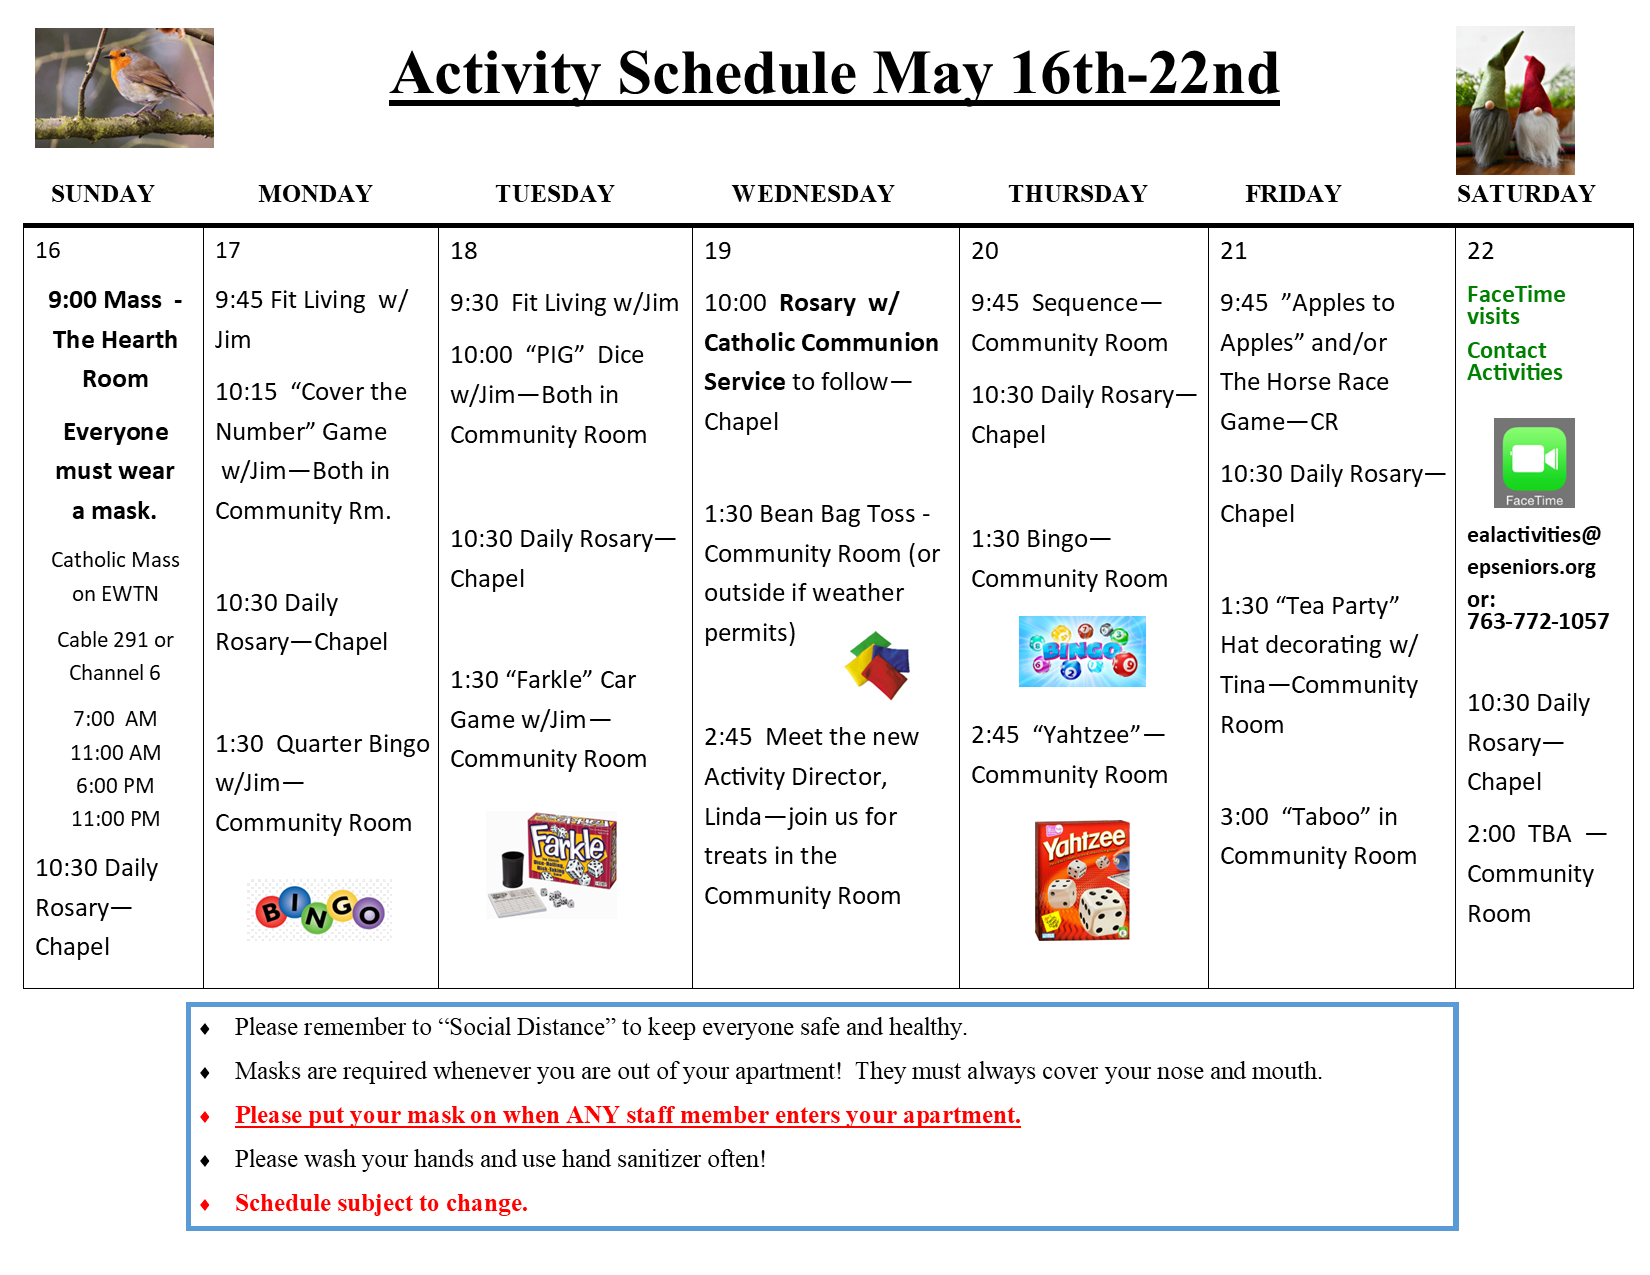 Weekly Schedule May 16 22